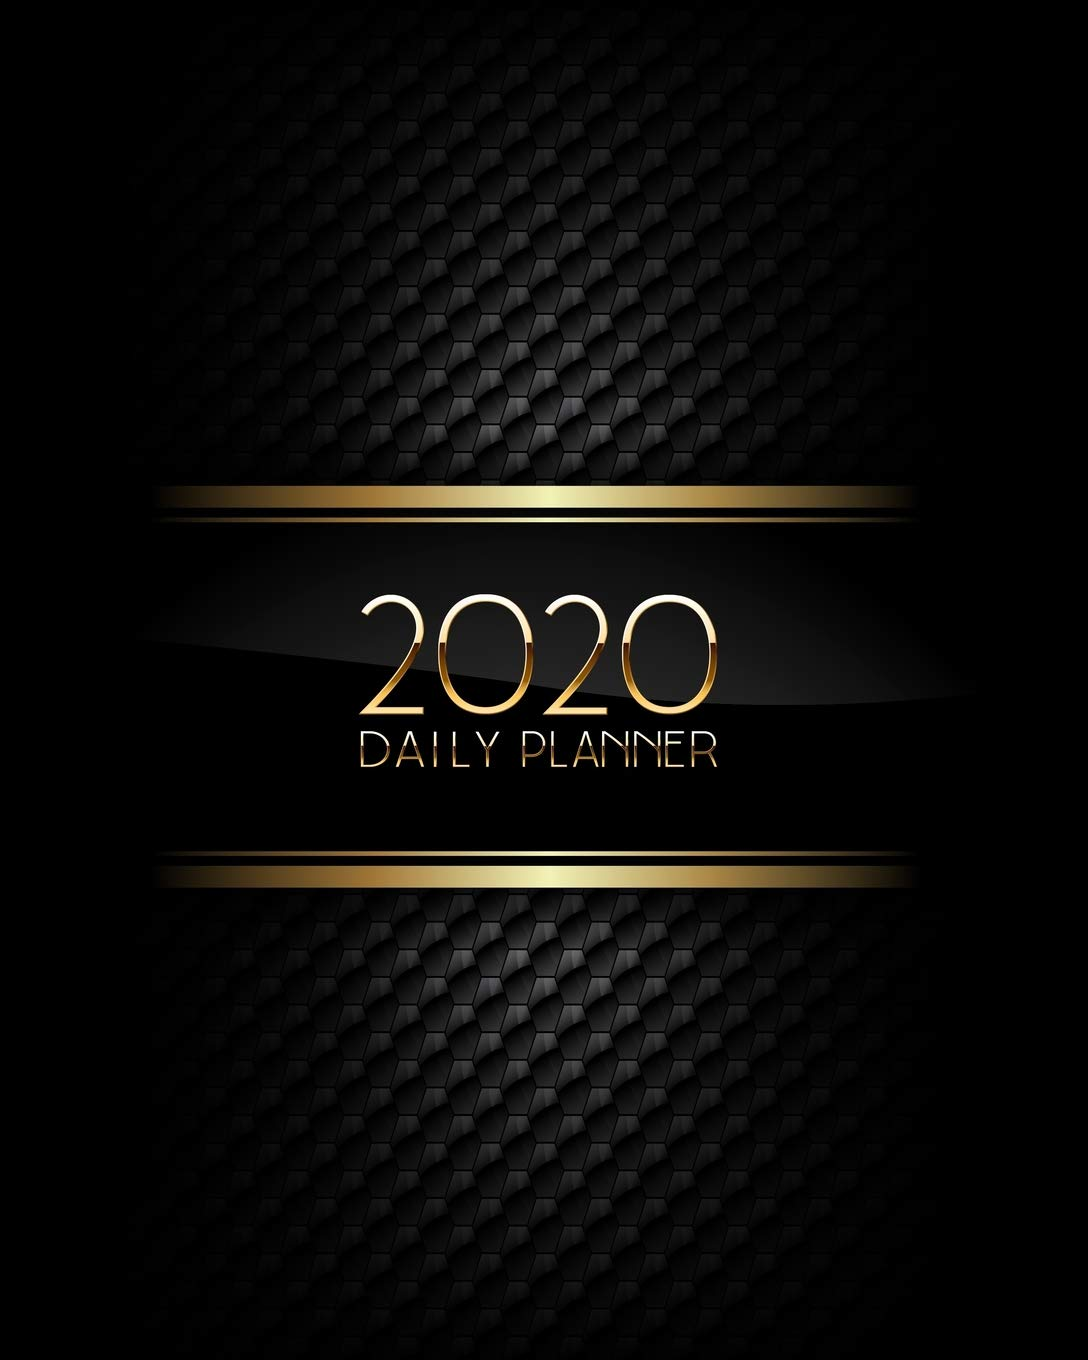 2020 Daily Planner: Luxury Black and Gold Texture Daily ...